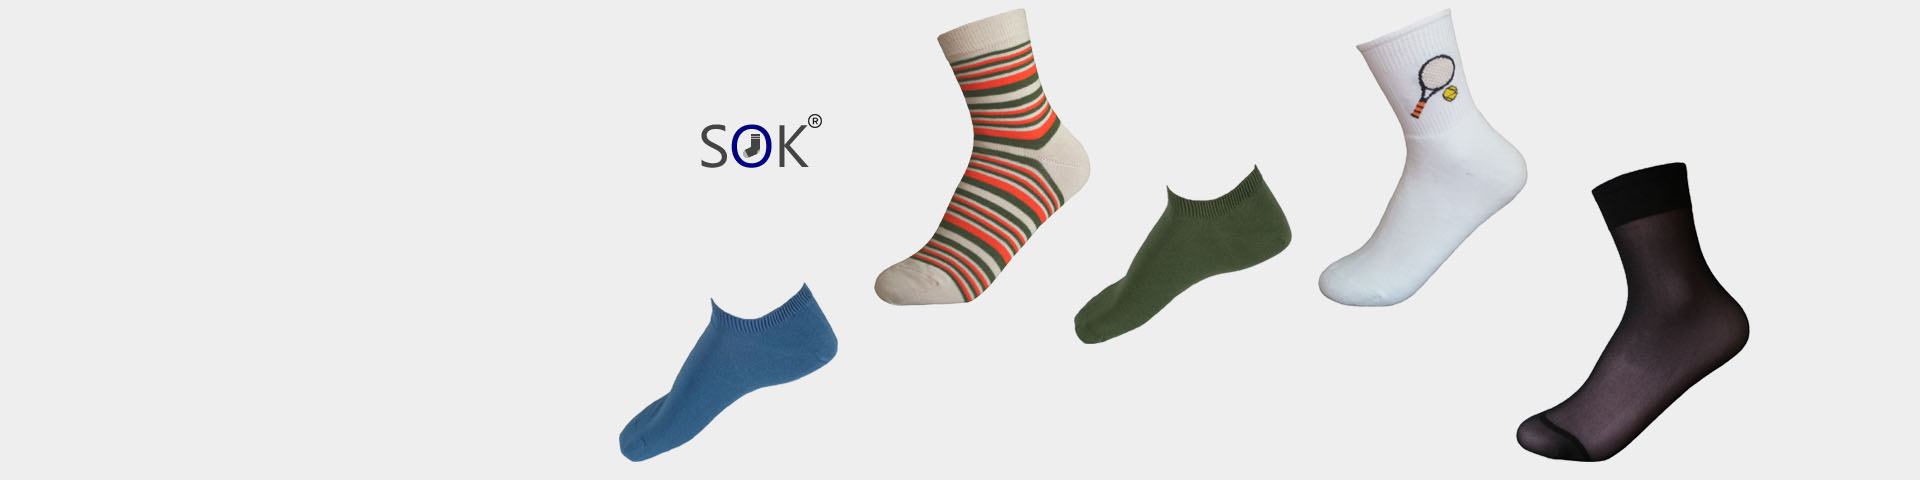 SOK socks and more